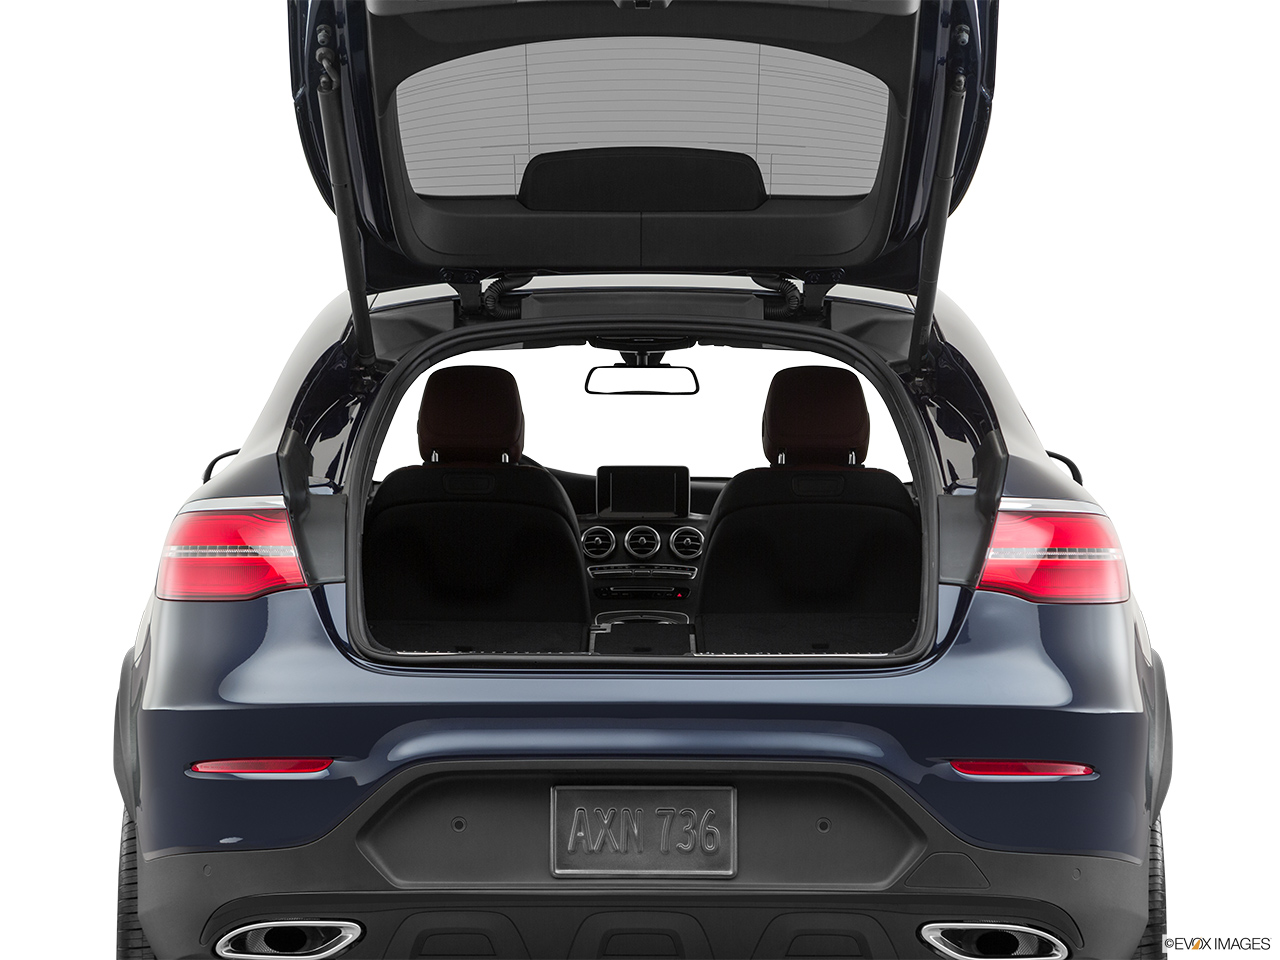 2019 Mercedes-Benz GLC-Class Coupe GLC 300 4MATIC Hatchback & SUV rear angle.